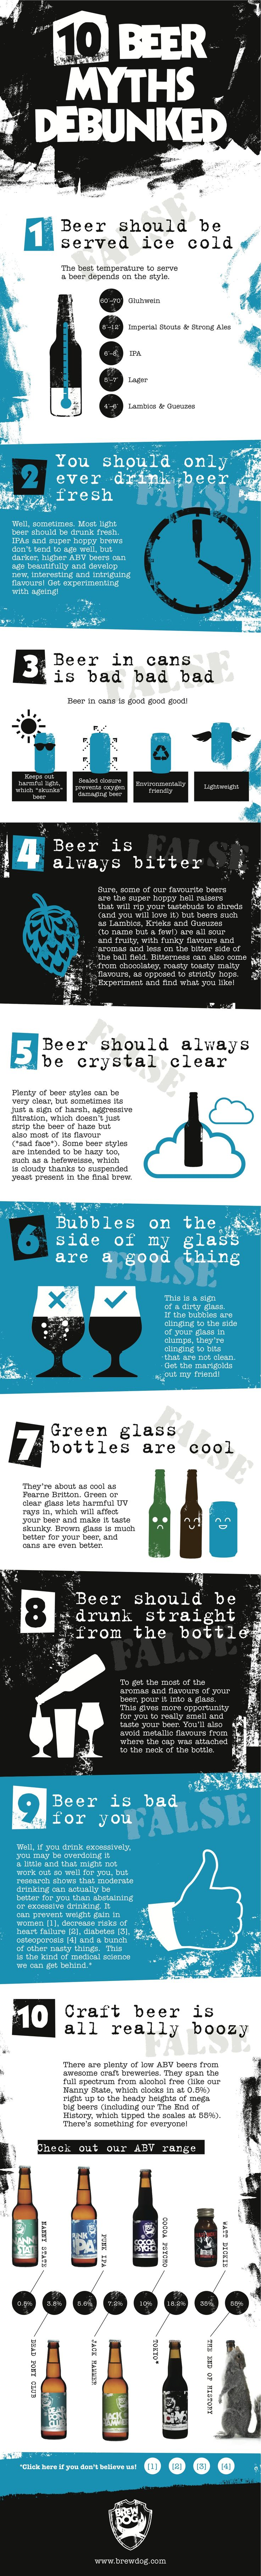 10 beer myths debunked infographic! How to take the best care of your beer and make the most of it